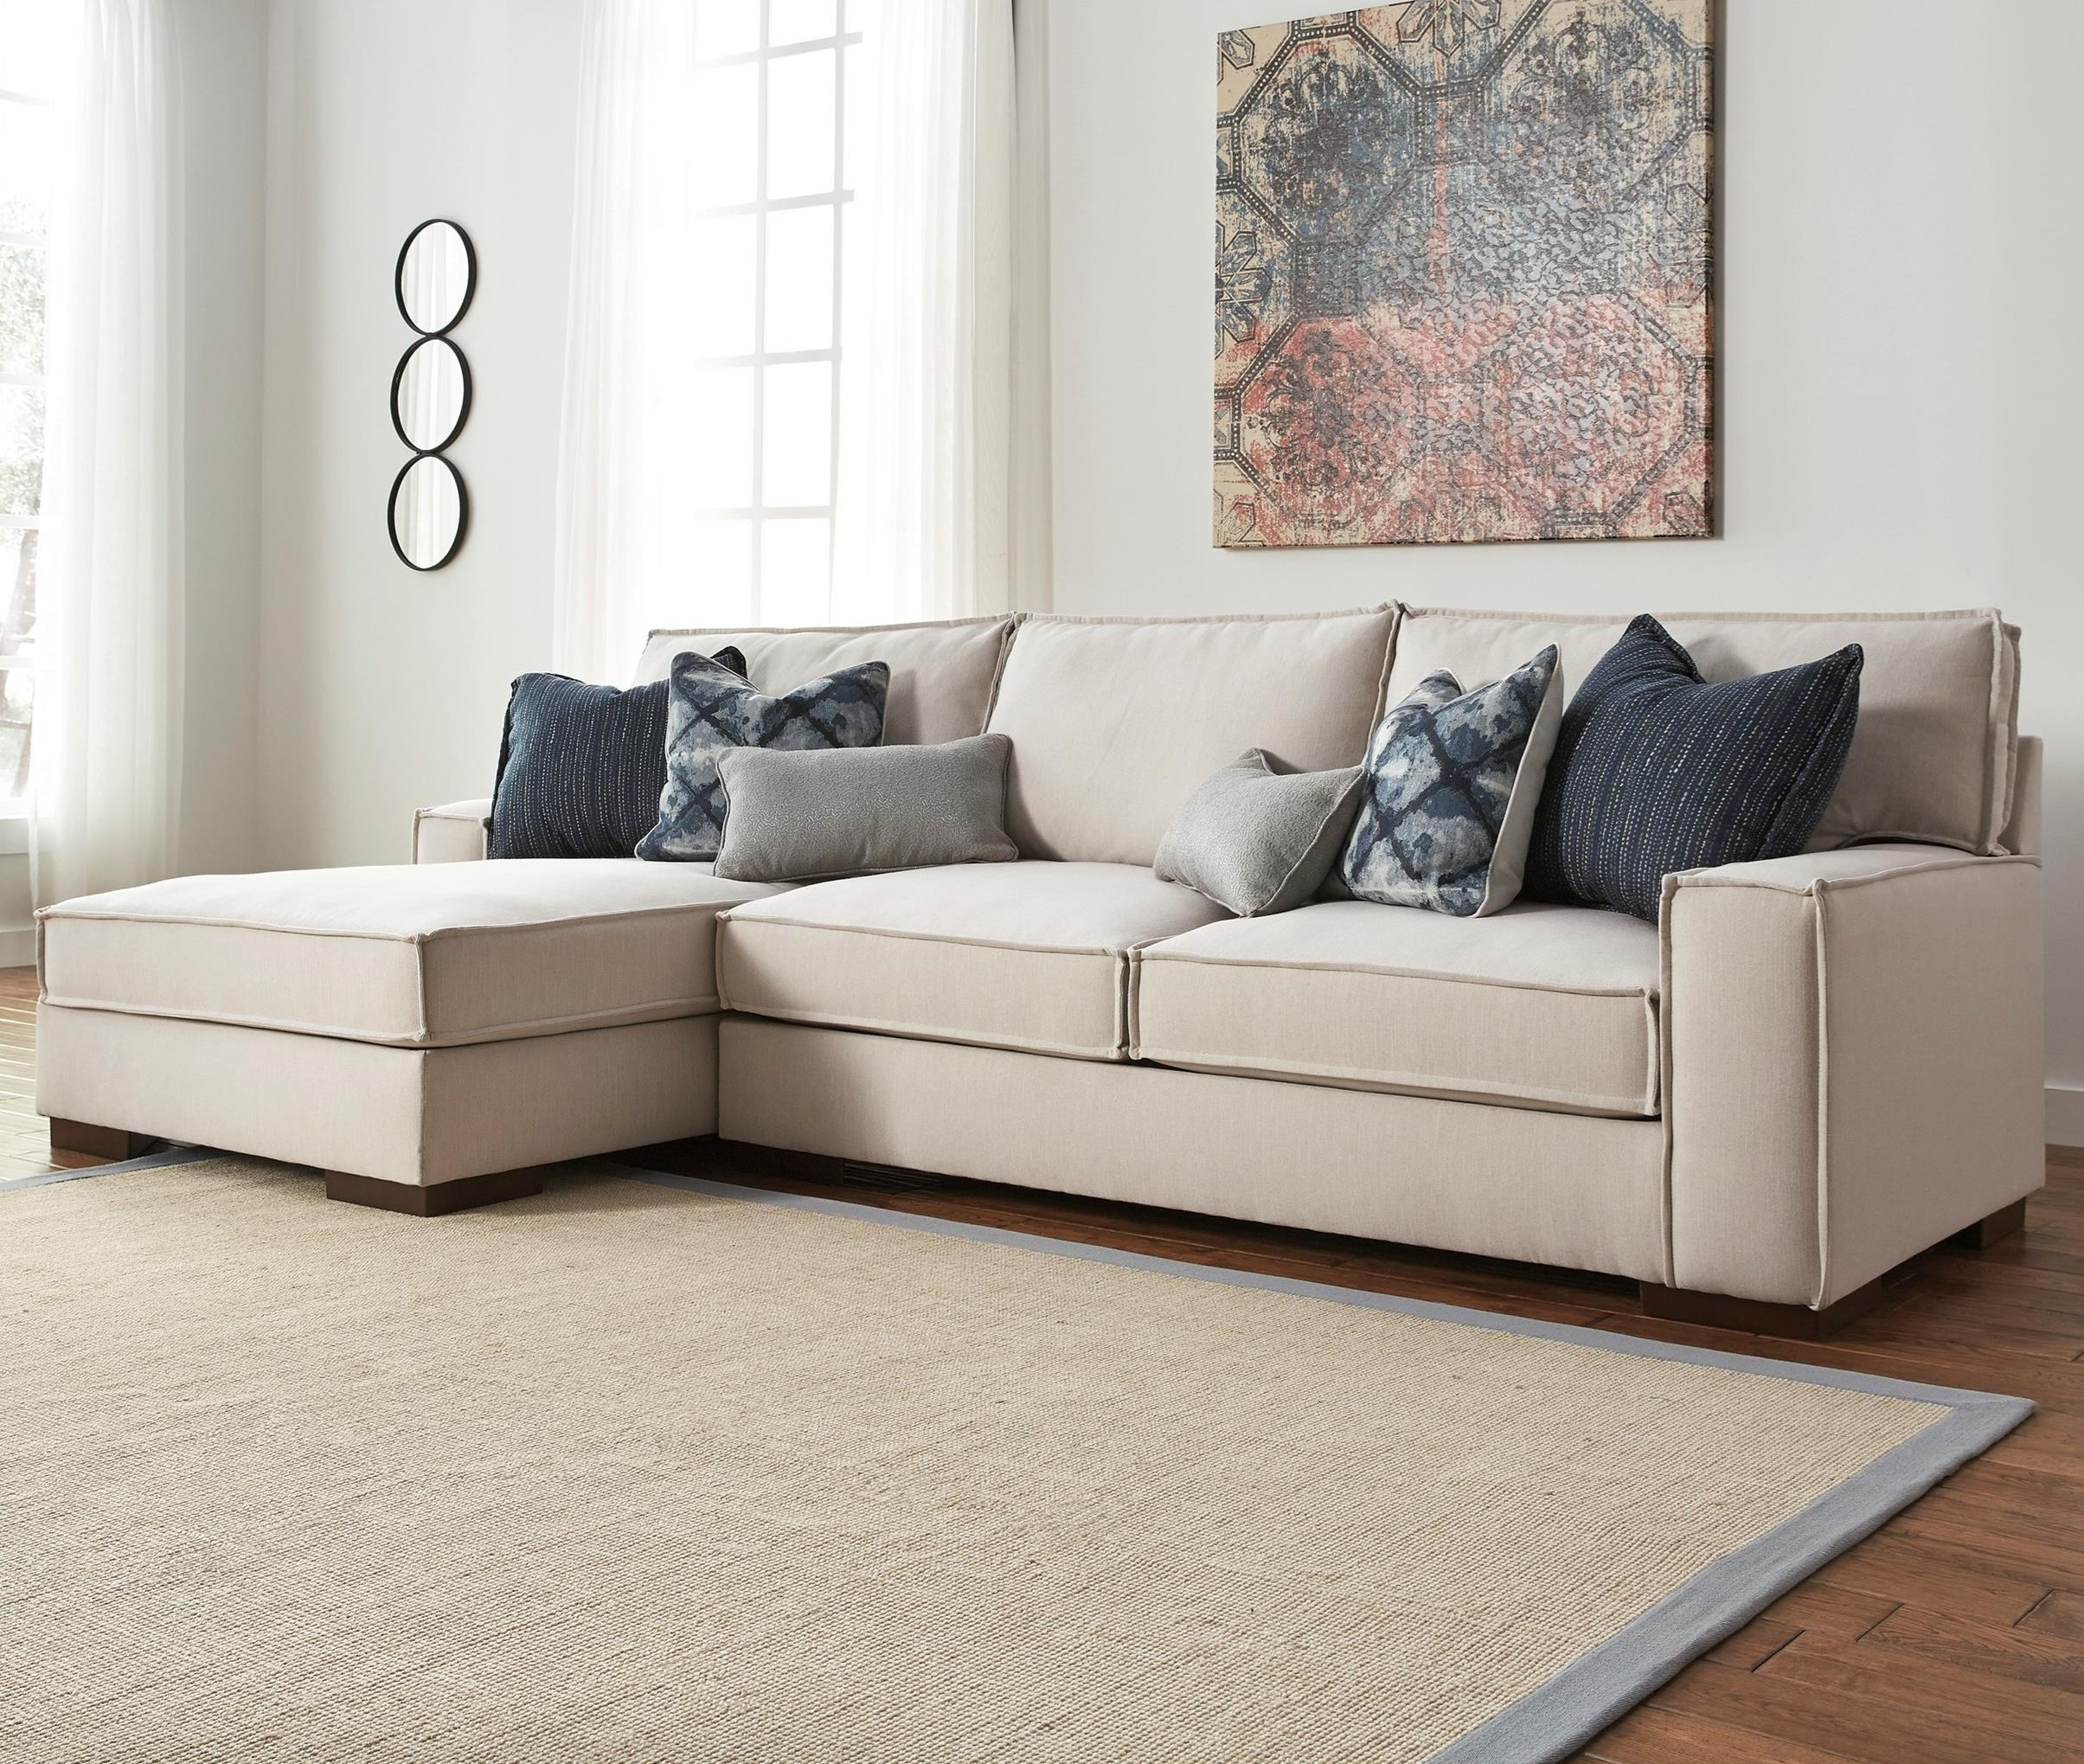 Benchcraft Kendleton 2-Piece Sectional with Left Chaise - Item Number: 5470416+67